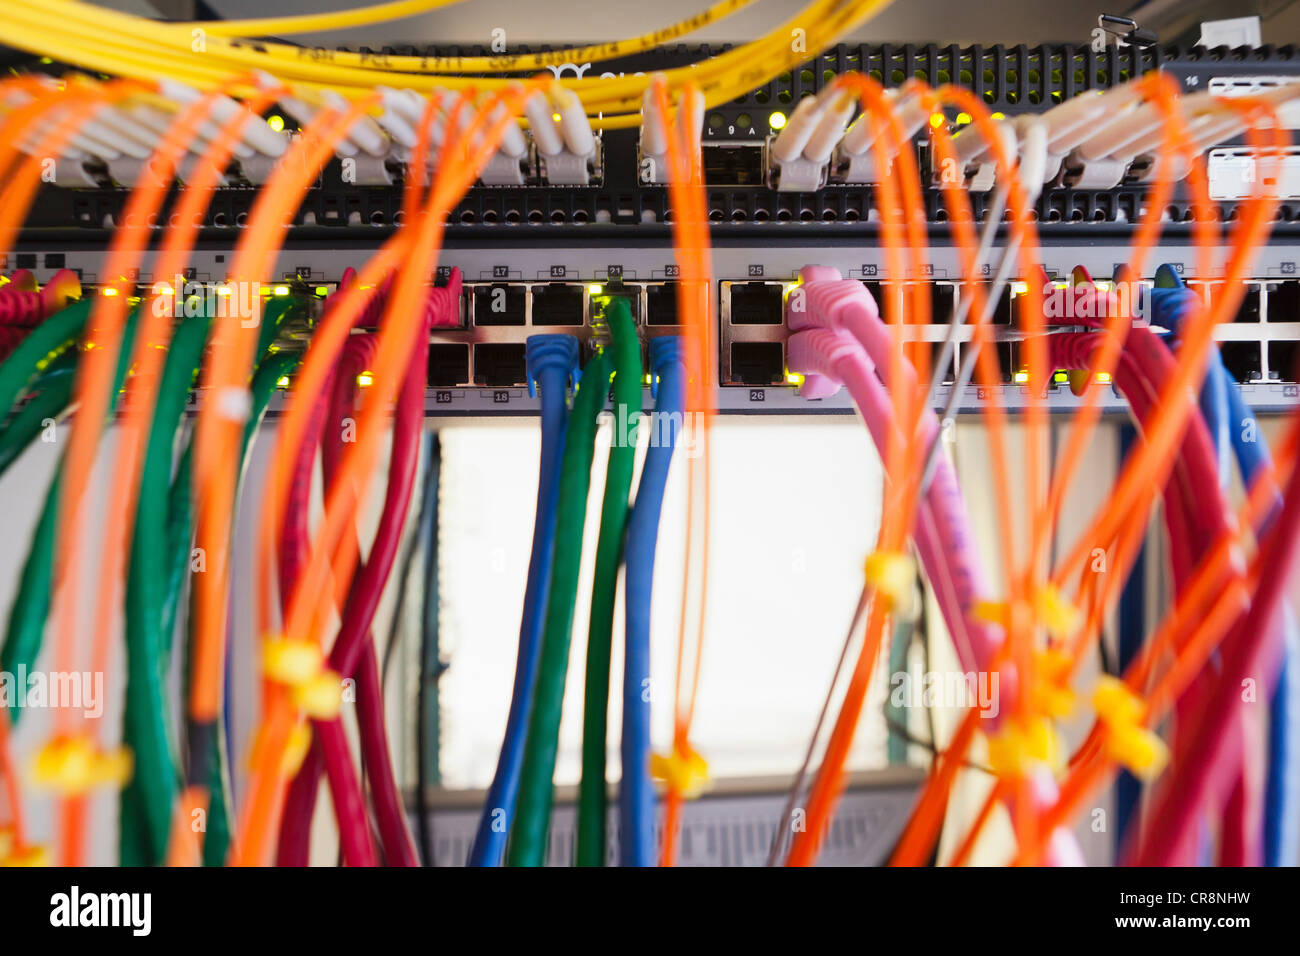 Cables in server room - Stock Image